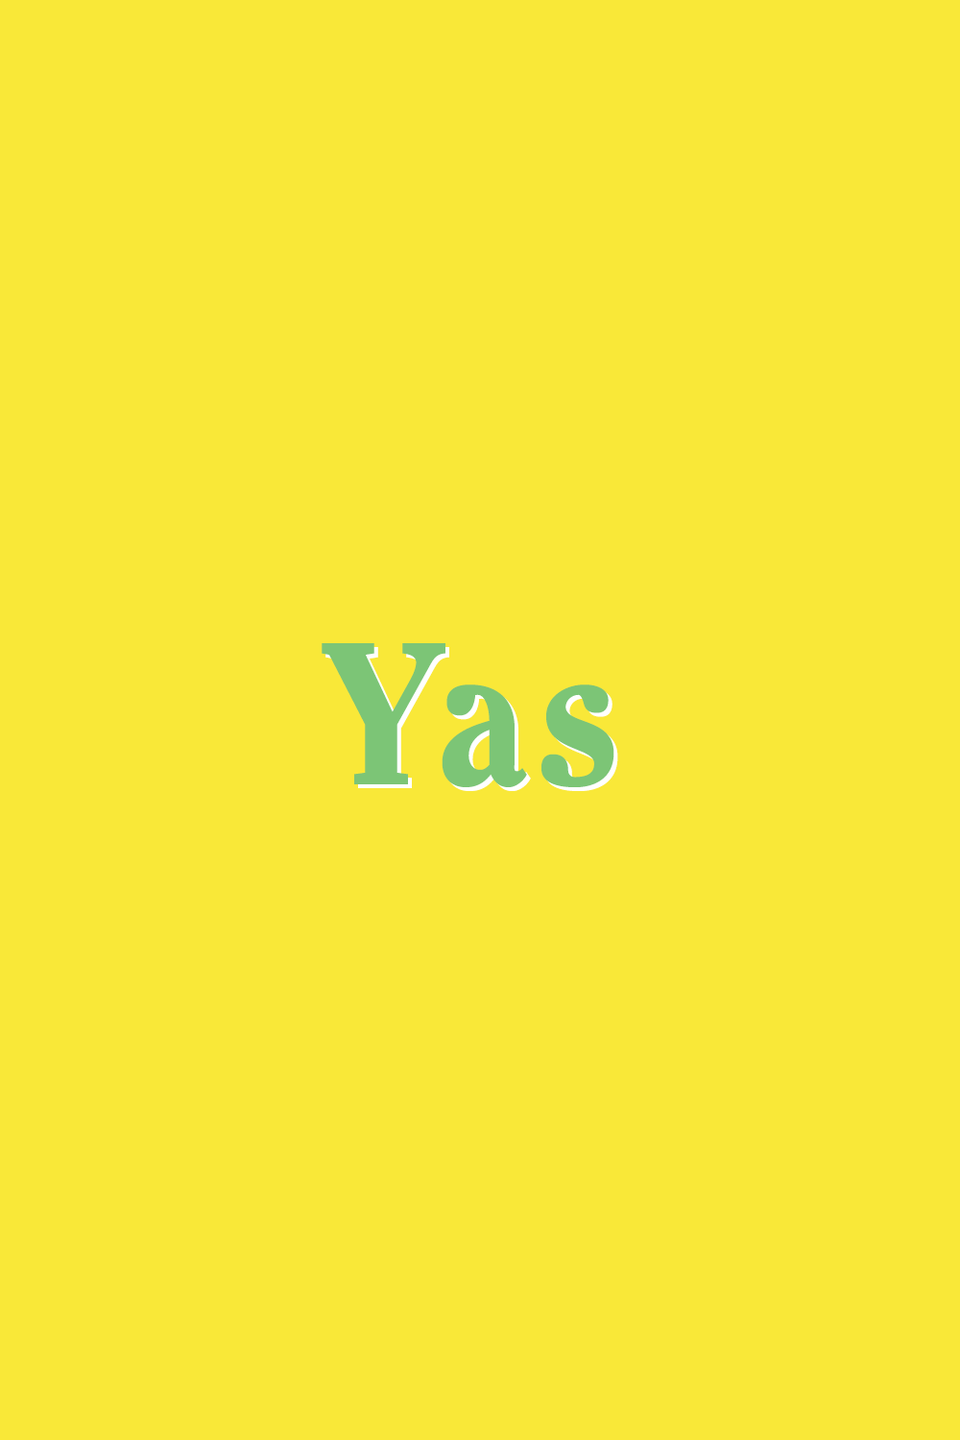 "<p>To express praise for something or someone, a simple ""yas,"" will do. Often, people mistakenly think ""yass"" comes from <a href=""https://www.amazon.com/Broad-City-Season-4/dp/B074WJDV94?tag=syn-yahoo-20&ascsubtag=%5Bartid%7C10070.g.36318291%5Bsrc%7Cyahoo-us"" rel=""nofollow noopener"" target=""_blank"" data-ylk=""slk:Broad City"" class=""link rapid-noclick-resp""><em>Broad City</em></a>, in which Ilana Glazer's character regularly uses ""yass queen,"" or <a href=""https://www.youtube.com/watch?v=5Pn0JKmy5-M"" rel=""nofollow noopener"" target=""_blank"" data-ylk=""slk:this viral 2013 video"" class=""link rapid-noclick-resp"">this viral 2013 video</a> in which a Lady Gaga fan repeatedly says, ""yass Gaga, you look so good."" But it generally derives from <a href=""https://www.oprahdaily.com/life/a23601818/queer-cultural-appropriation-definition/"" rel=""nofollow noopener"" target=""_blank"" data-ylk=""slk:ball culture"" class=""link rapid-noclick-resp"">ball culture</a>.</p>"